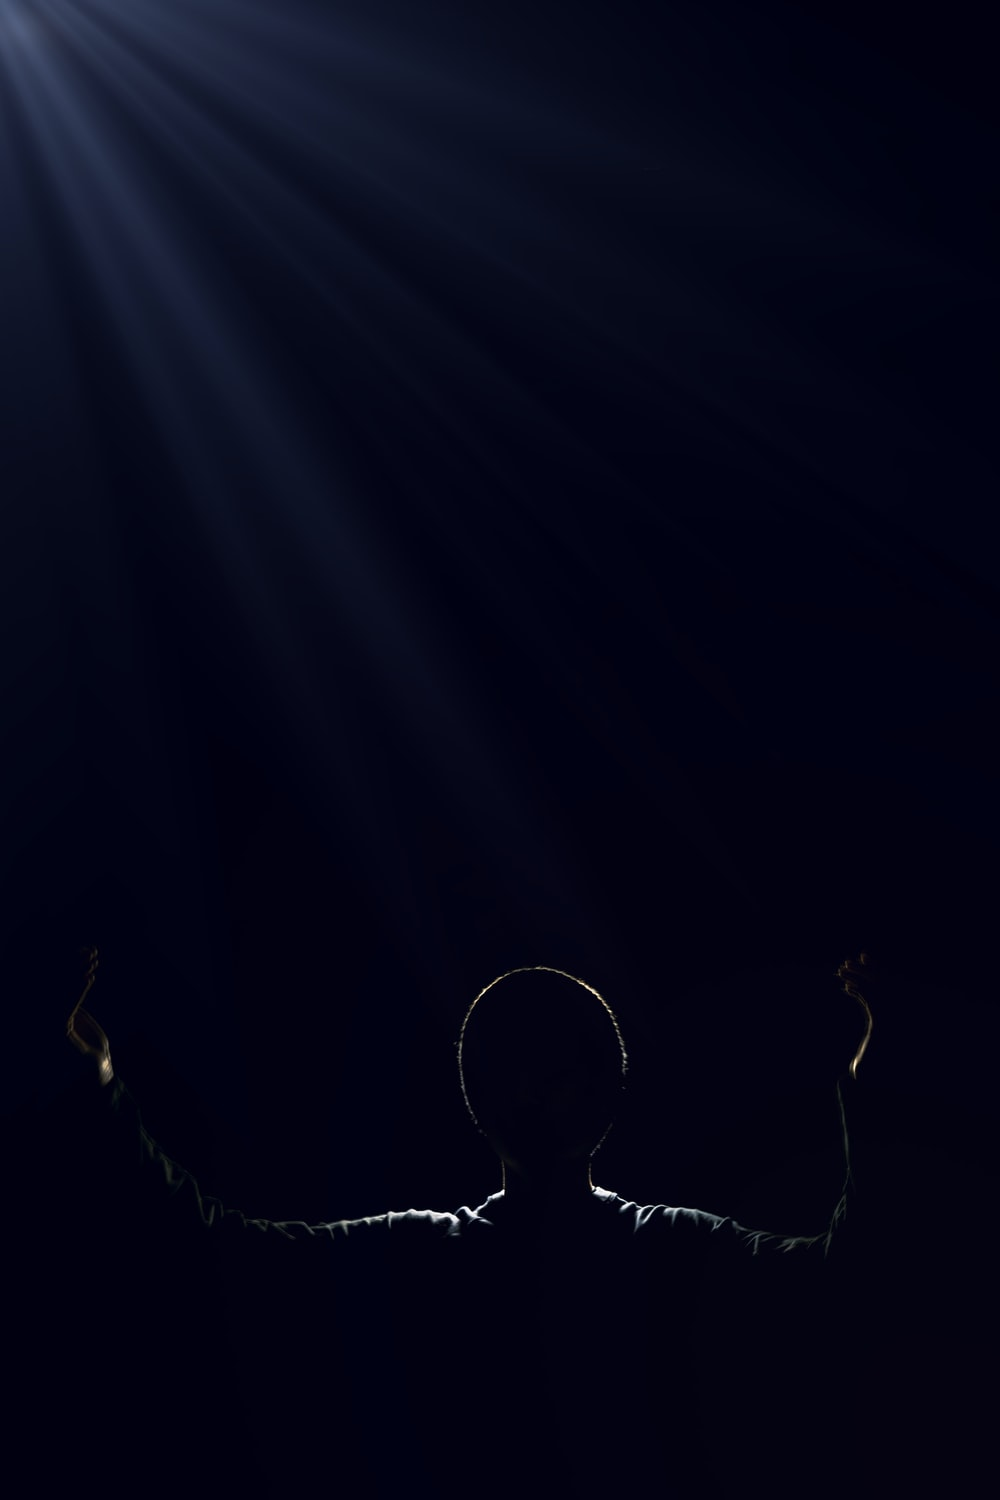 silhouette of person raising two hands